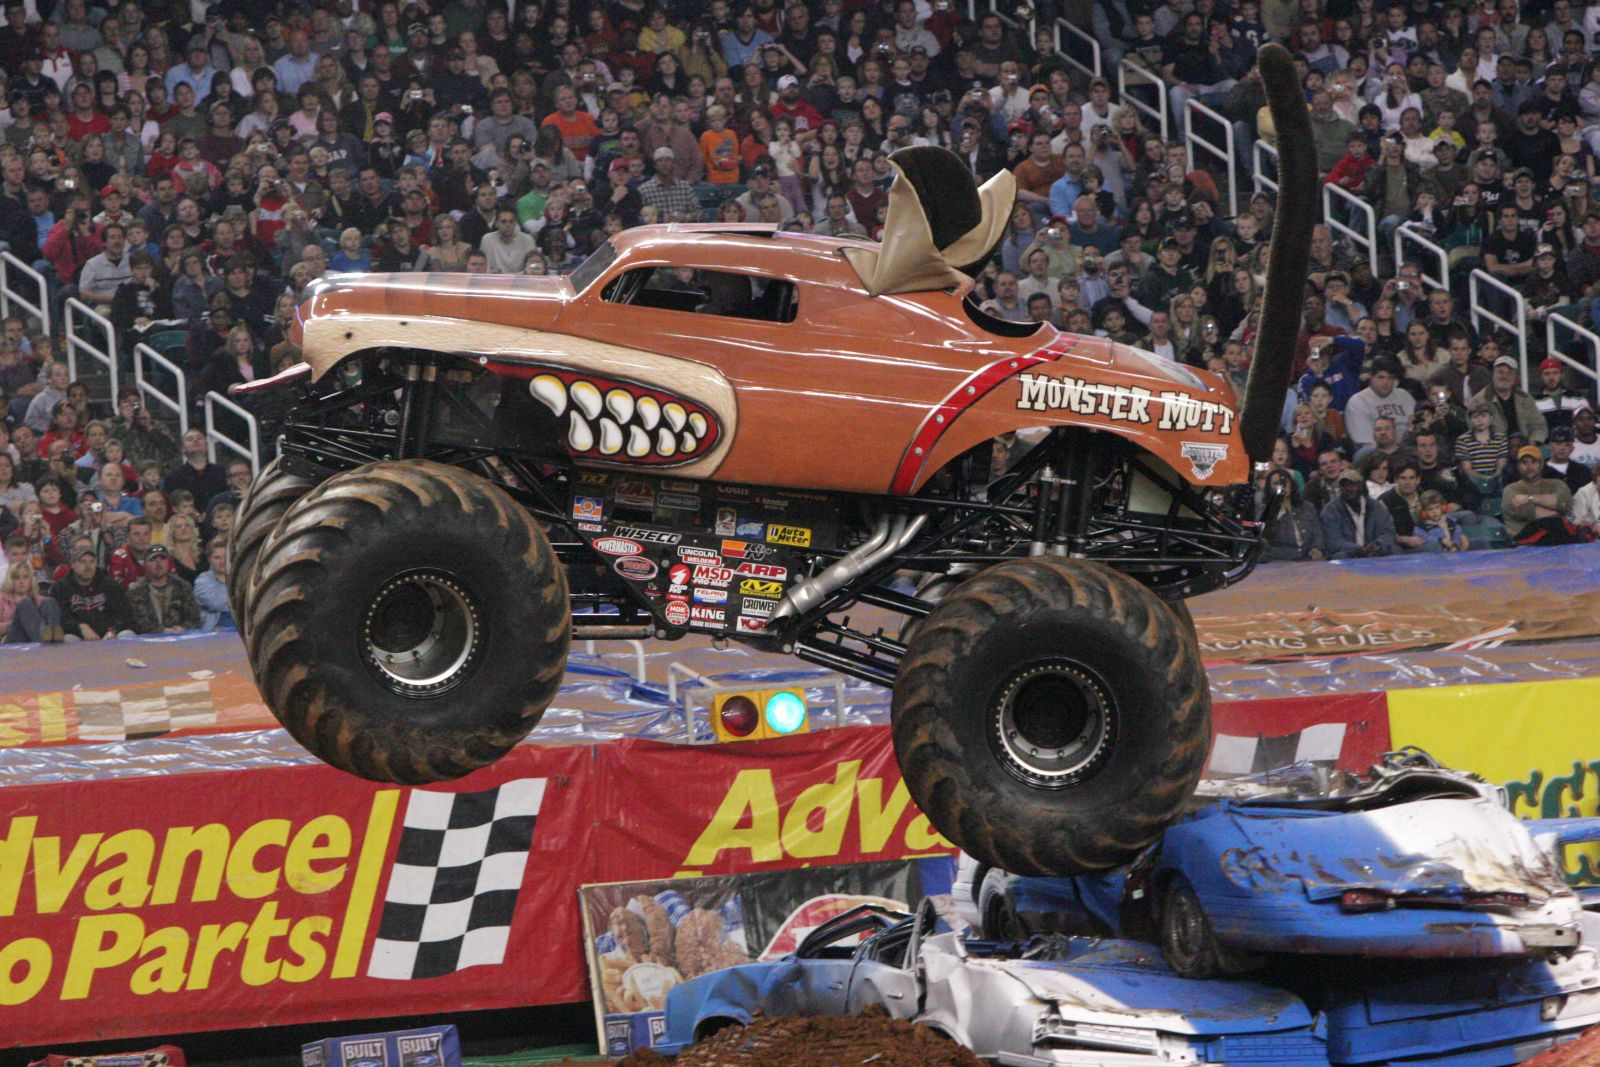 monstermutt08_01